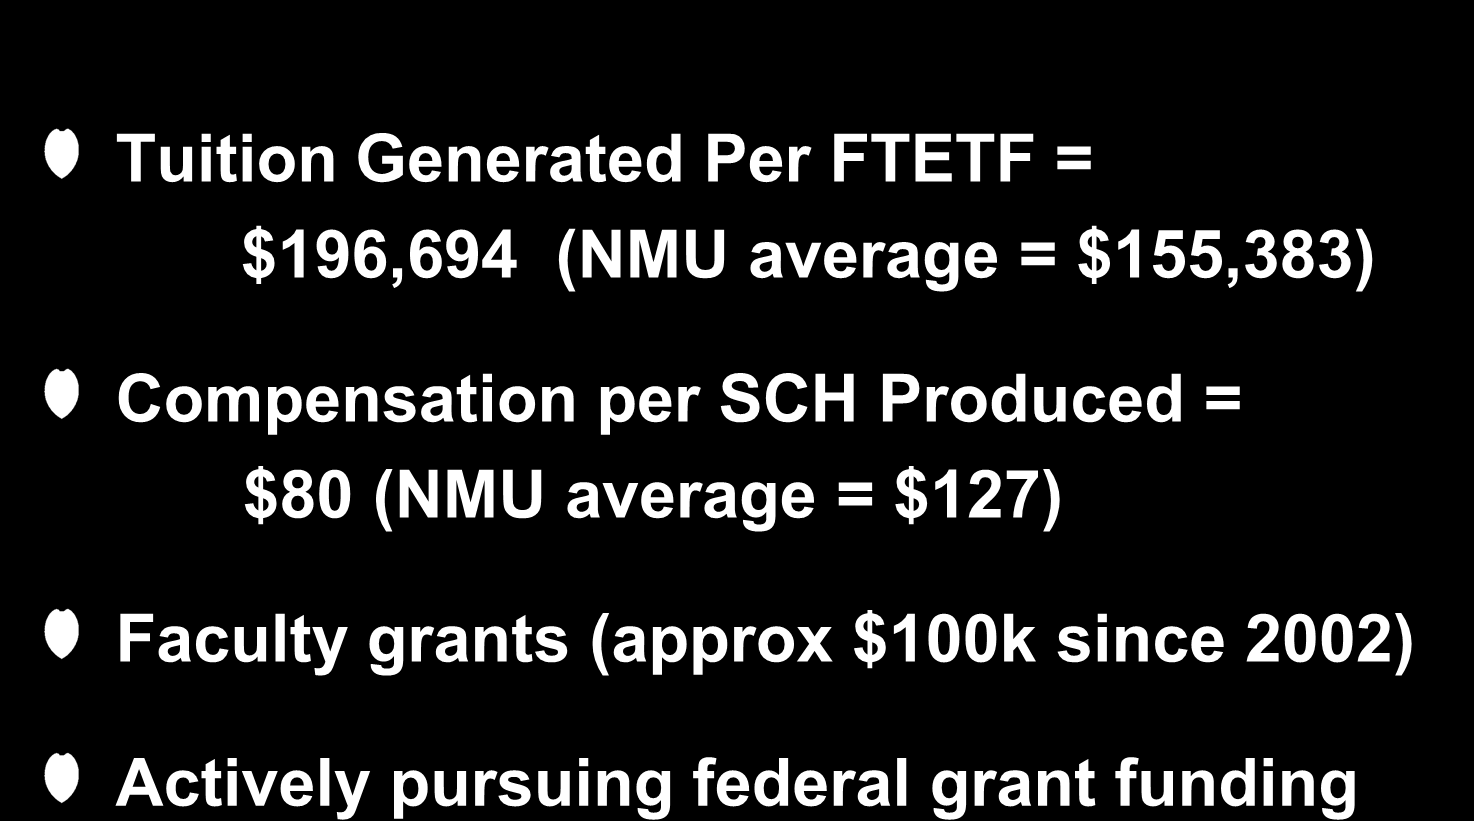 Criteria #8: Revenue and Other Resources Generated Tuition Generated Per FTETF = $196,694 (NMU average = $155,383)